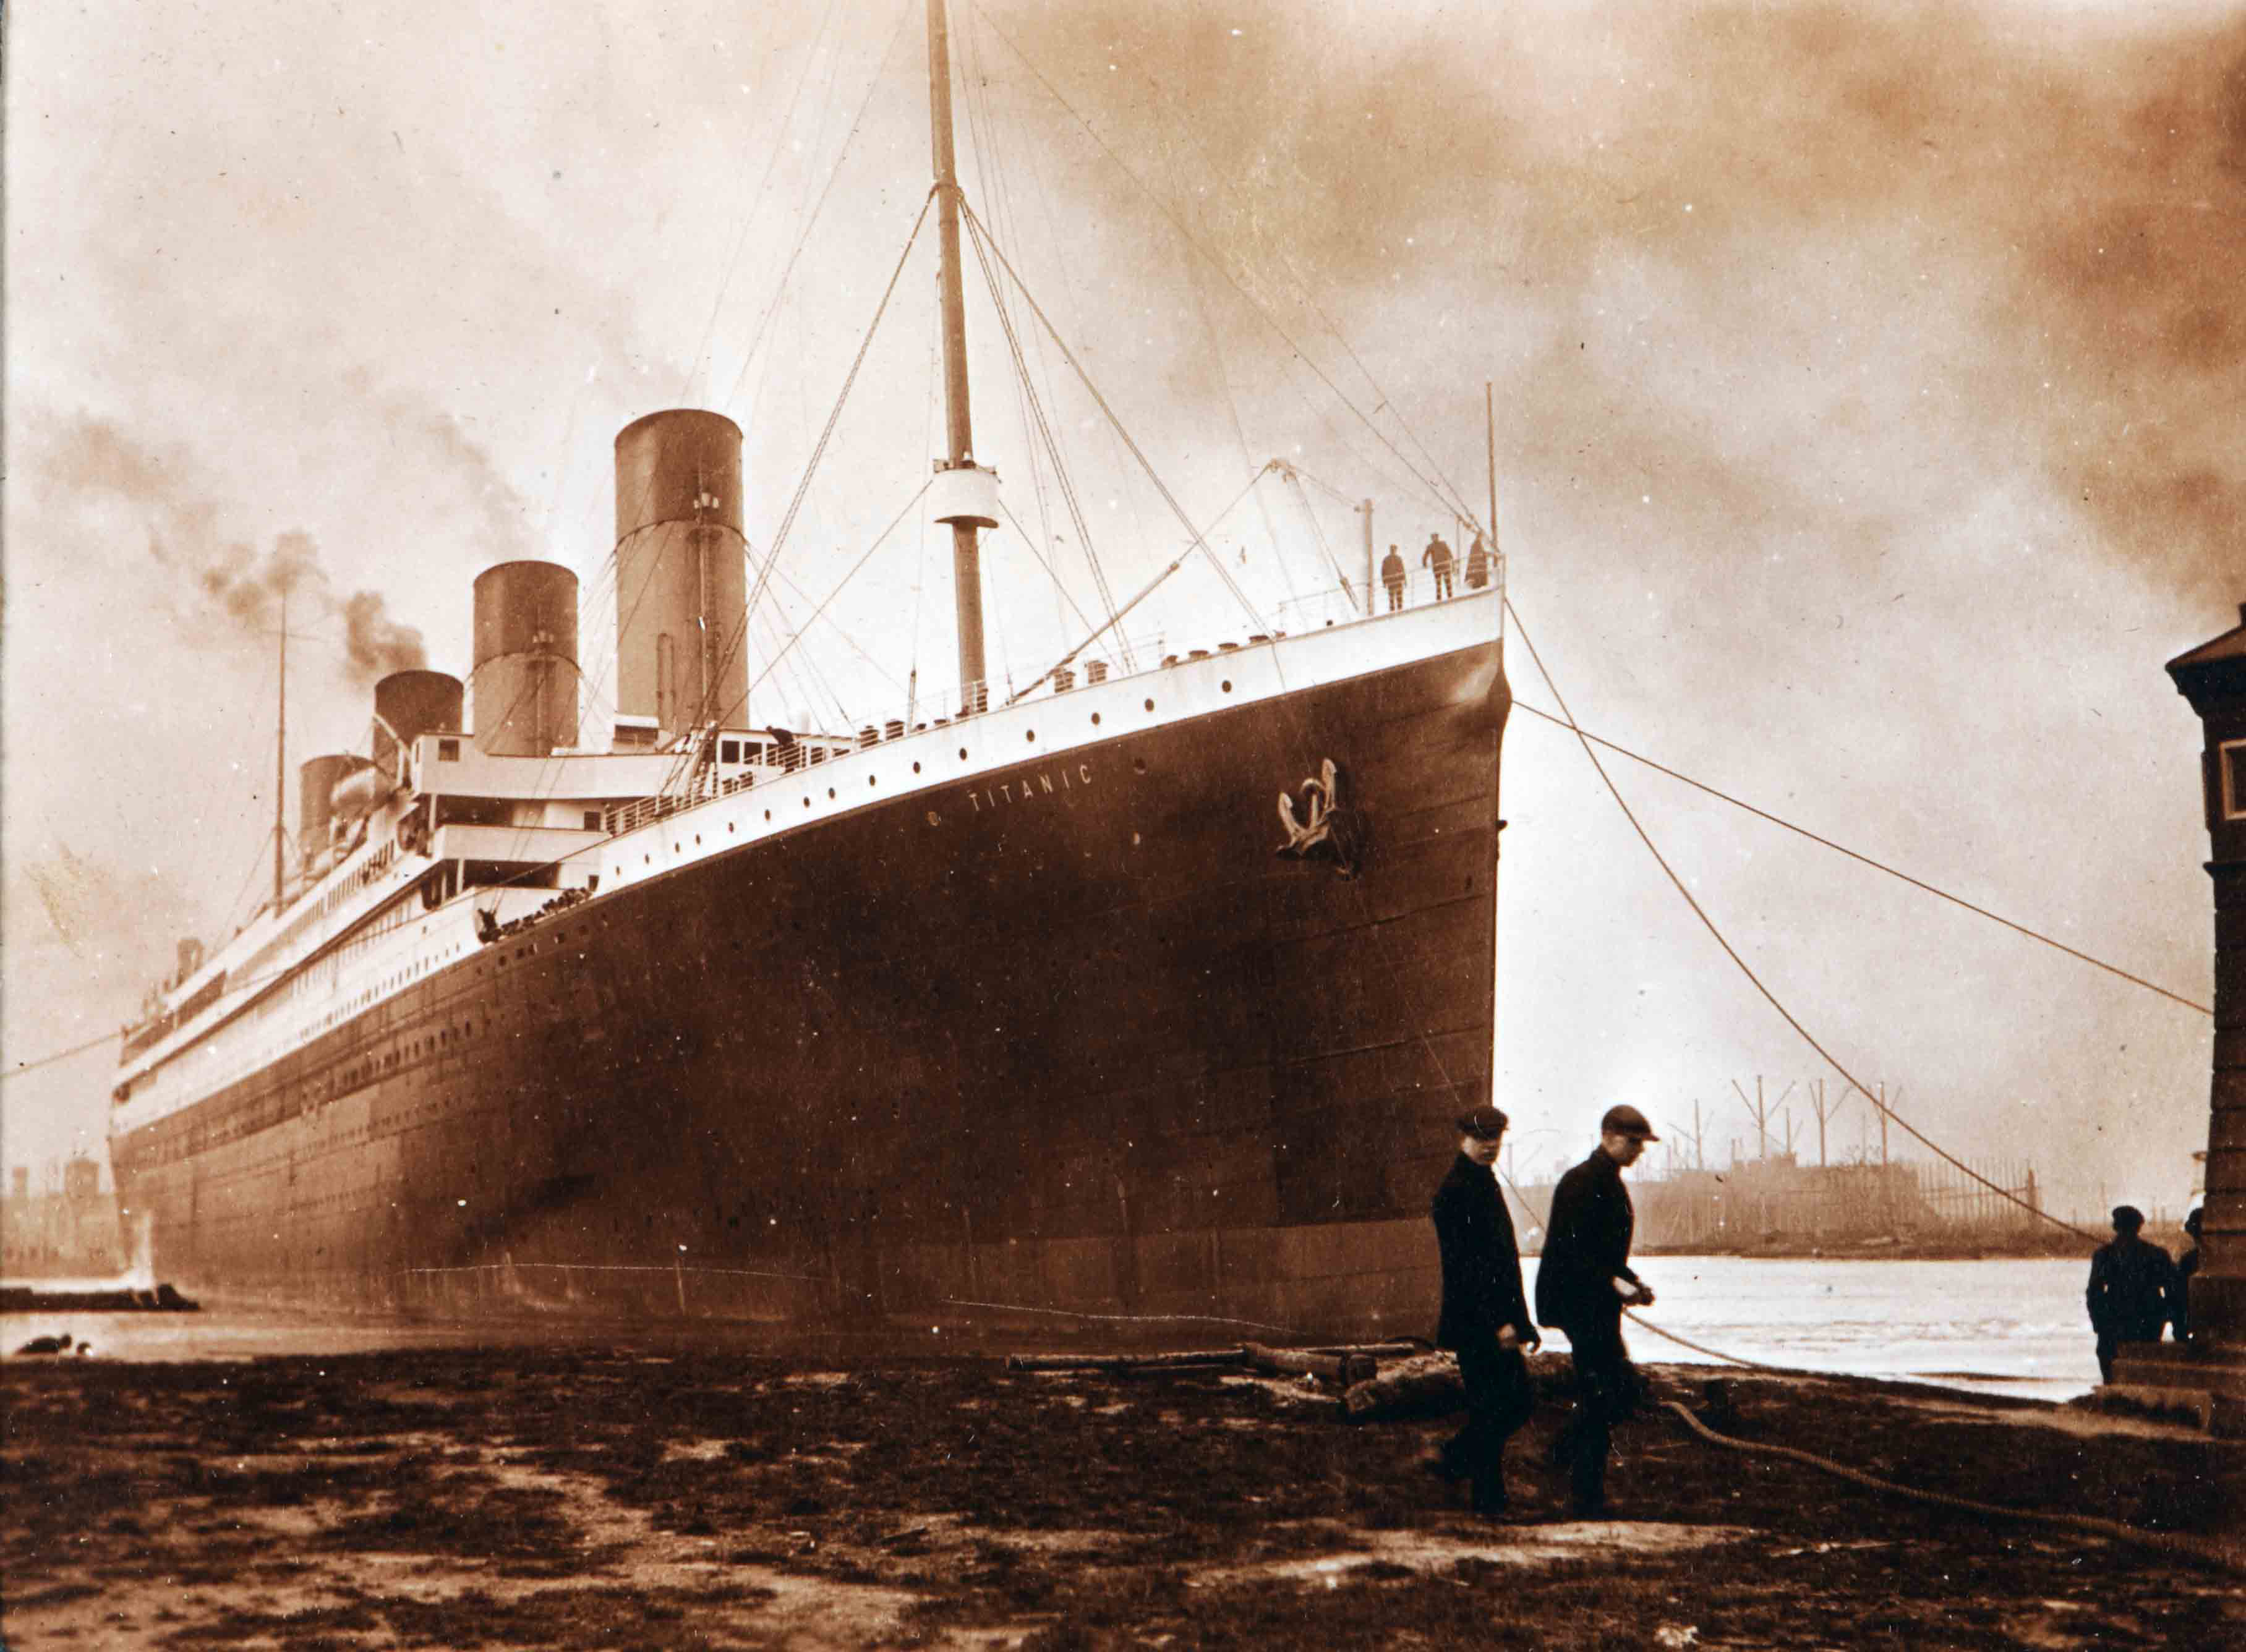 Thousands of items salvaged from the wreck of the RMS Titanic are set to go to auction next month to satisfy bankruptcy debts piled up by the company that owns them.